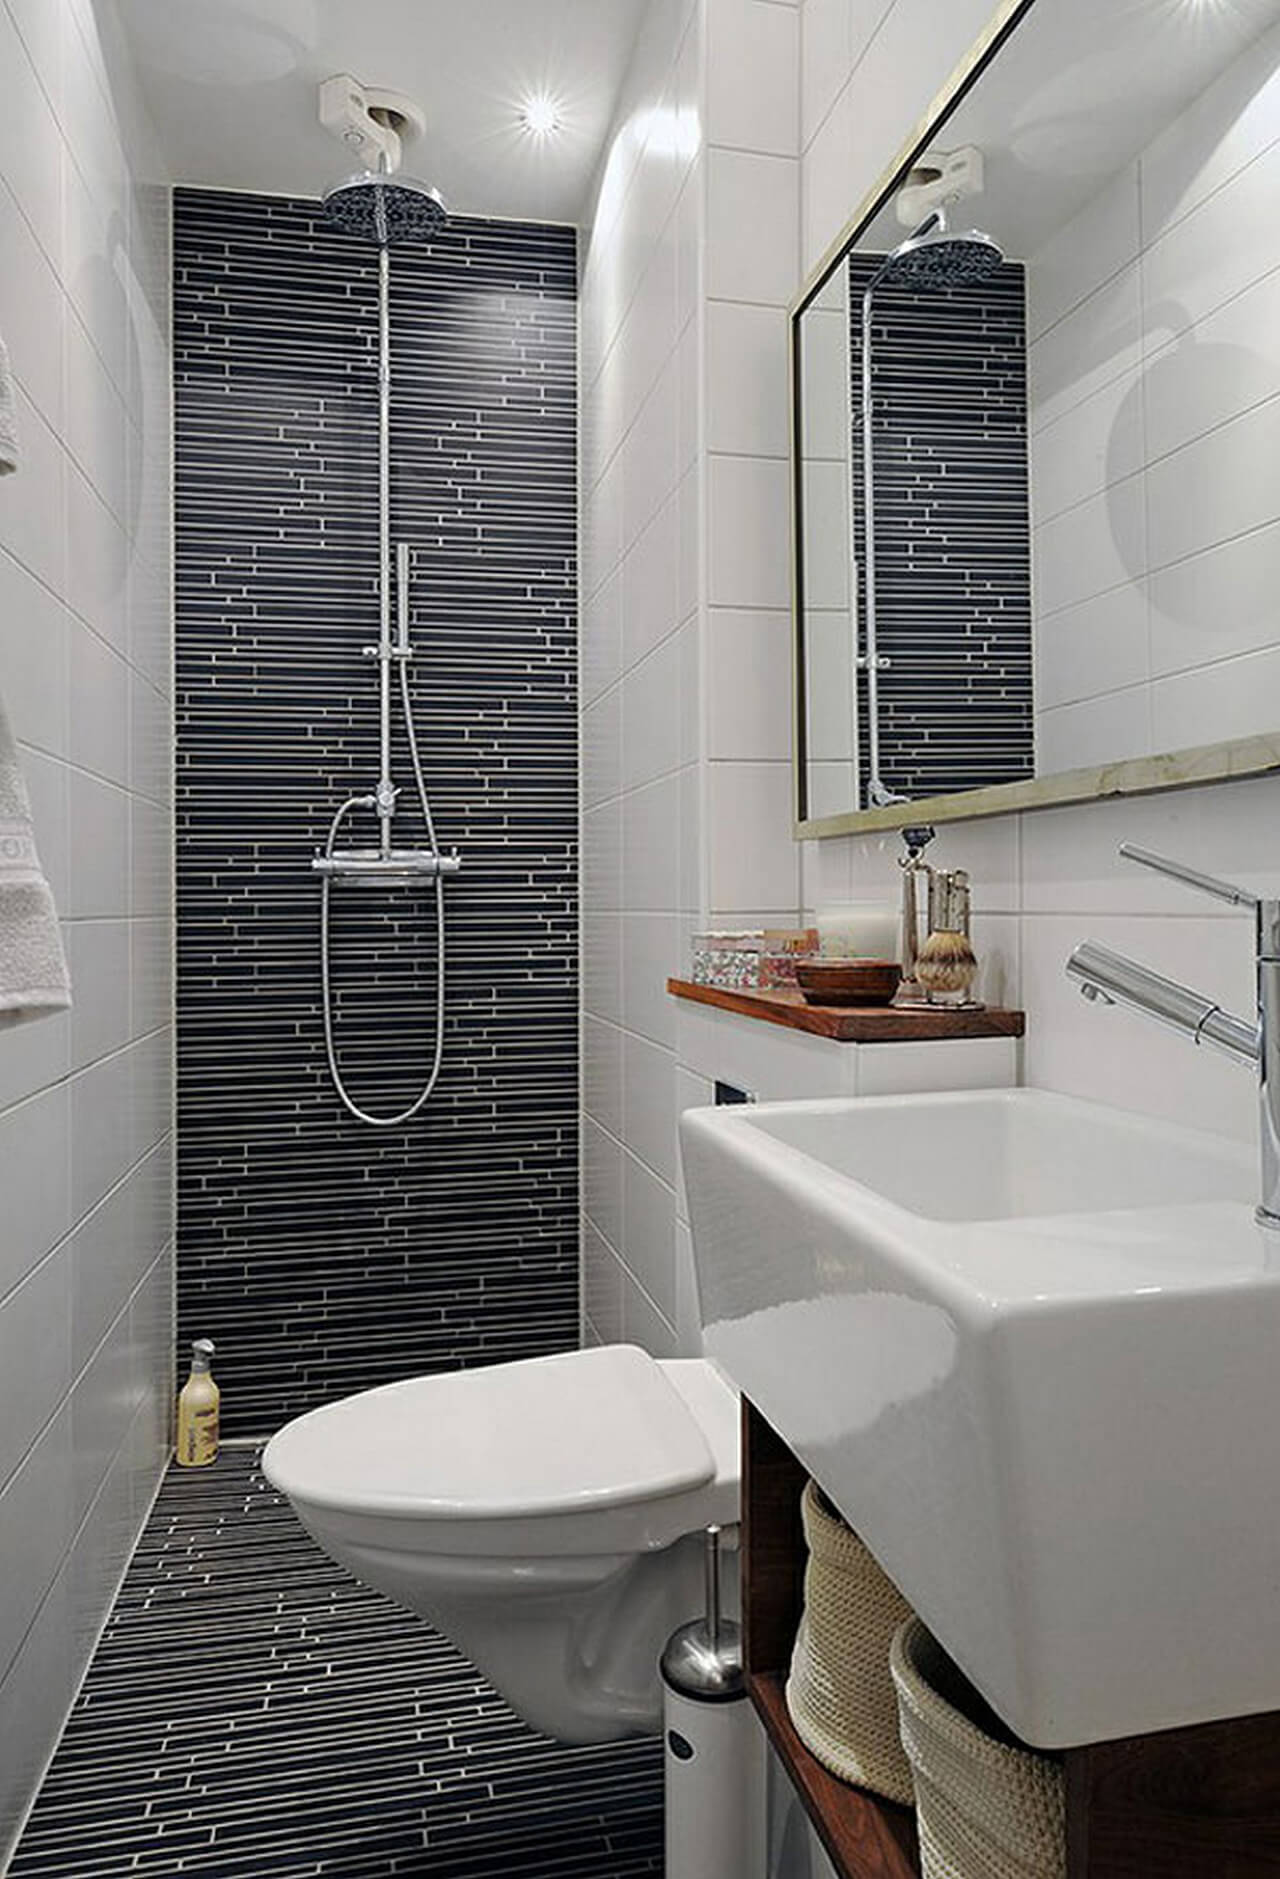 Wonderful Curtain Free Wet Room With Modern Tiles